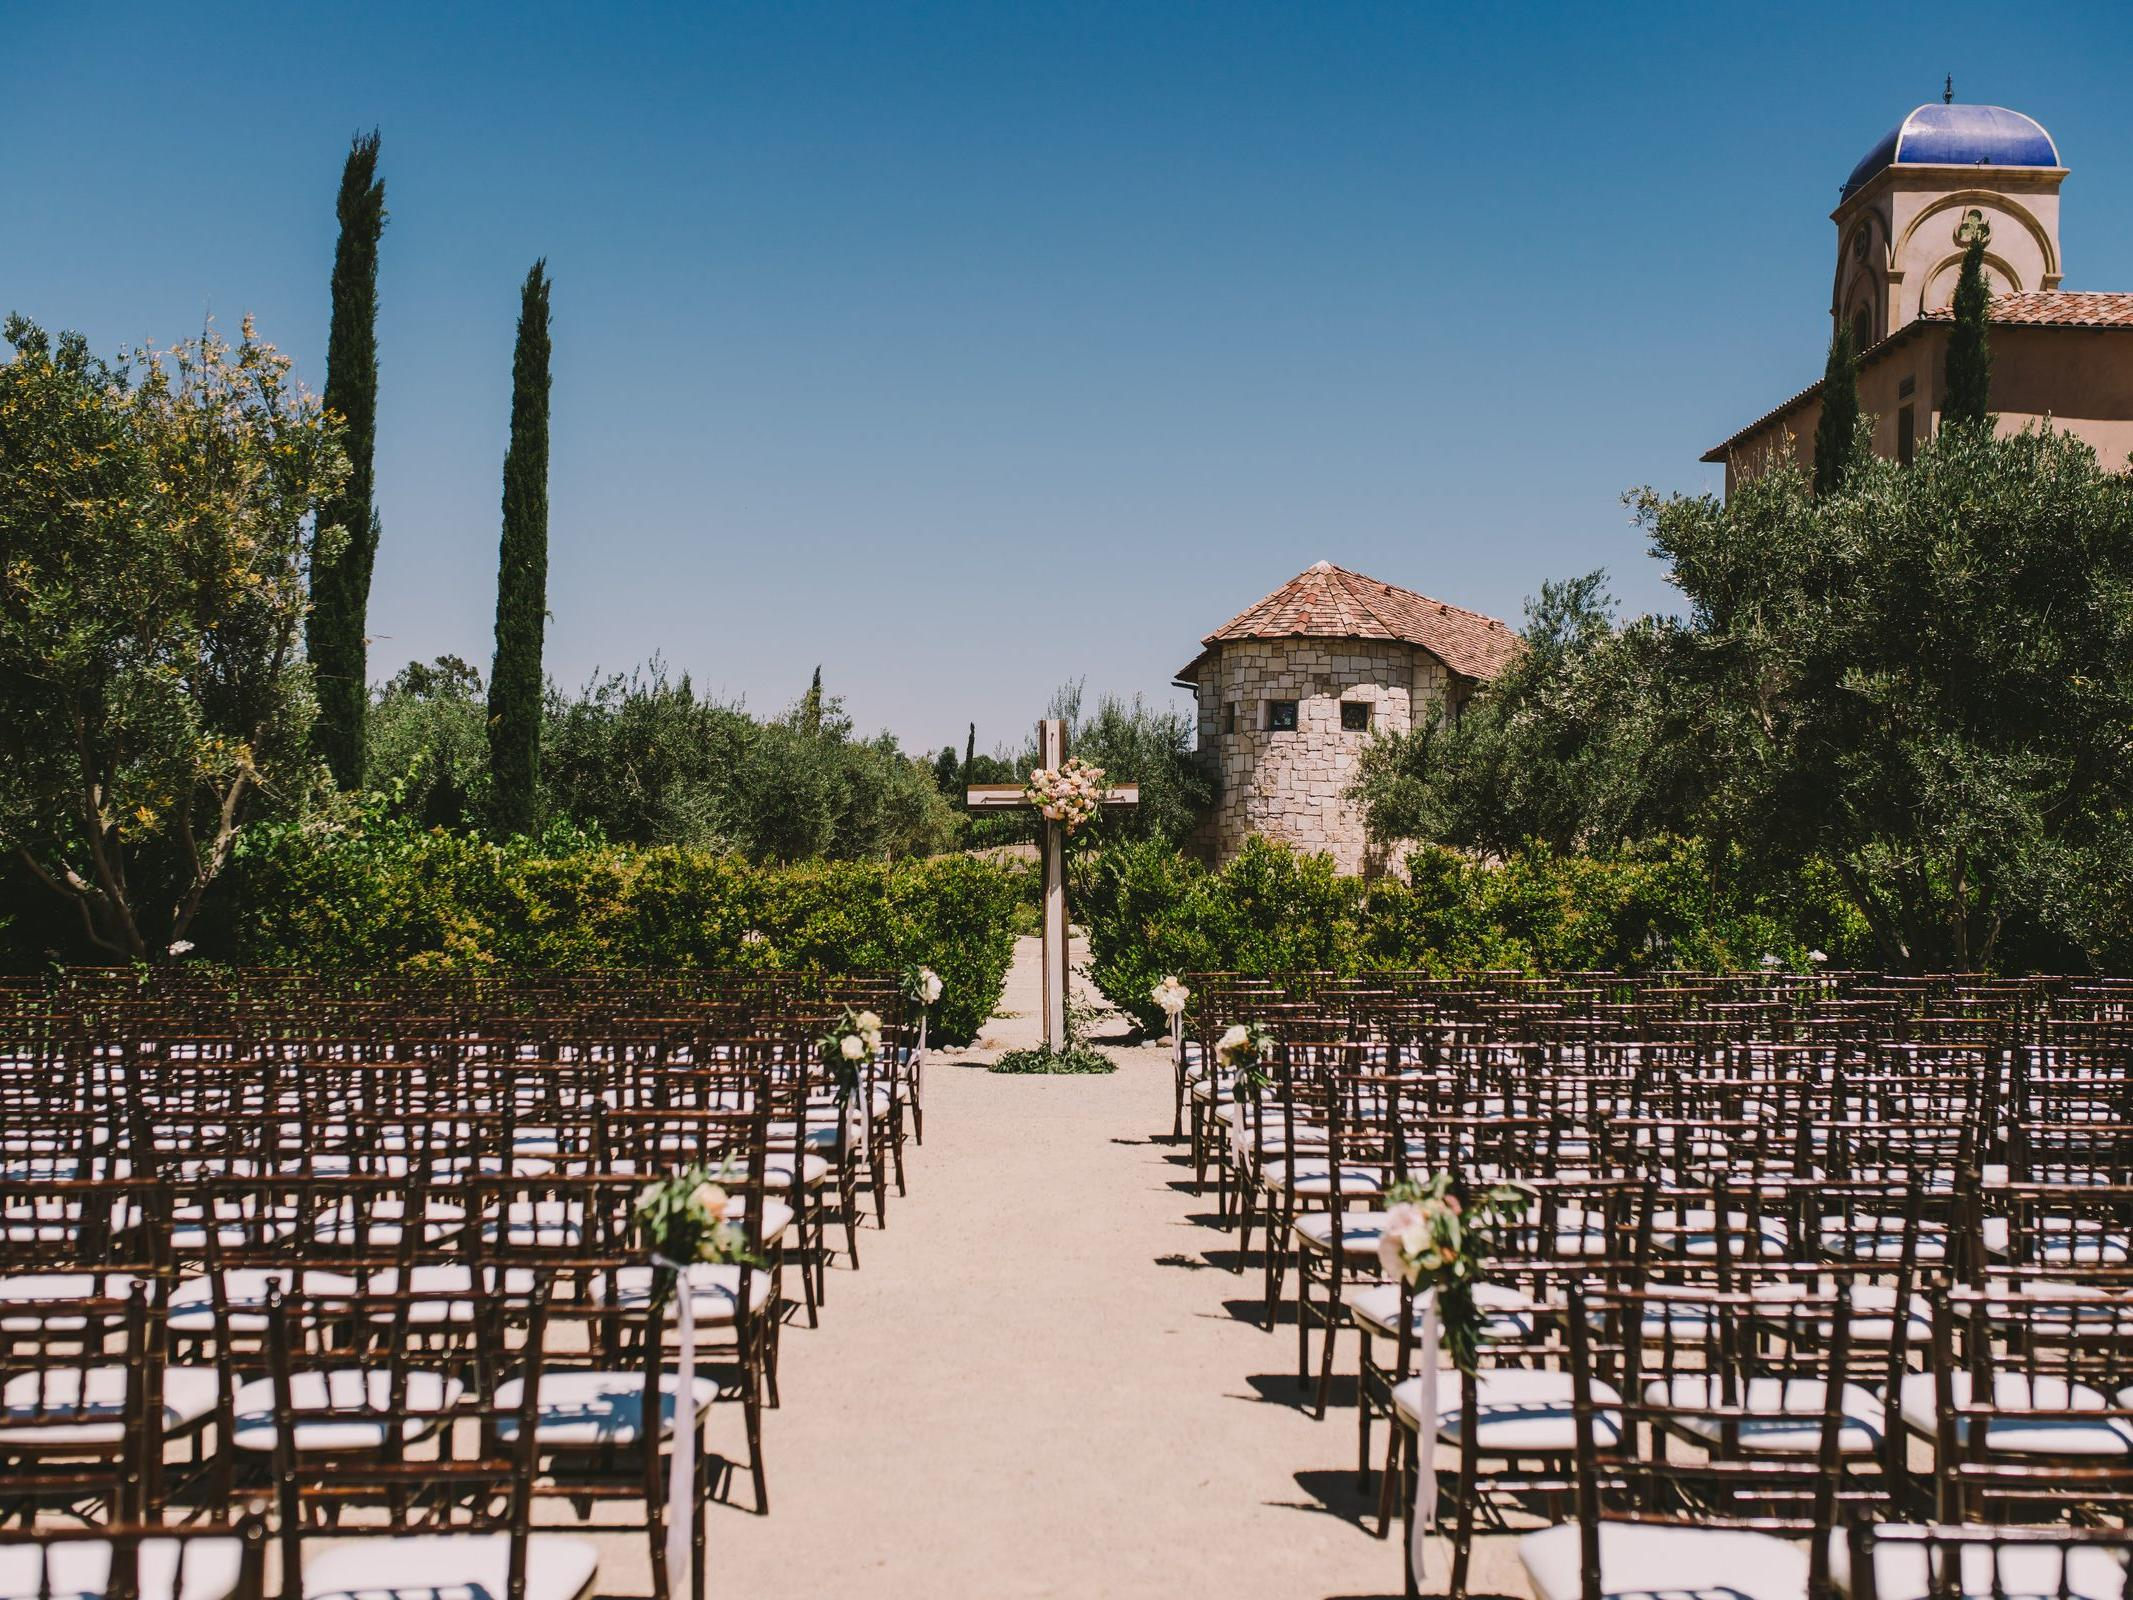 Looking down the aisle of rows of chairs set for an outdoor wedding